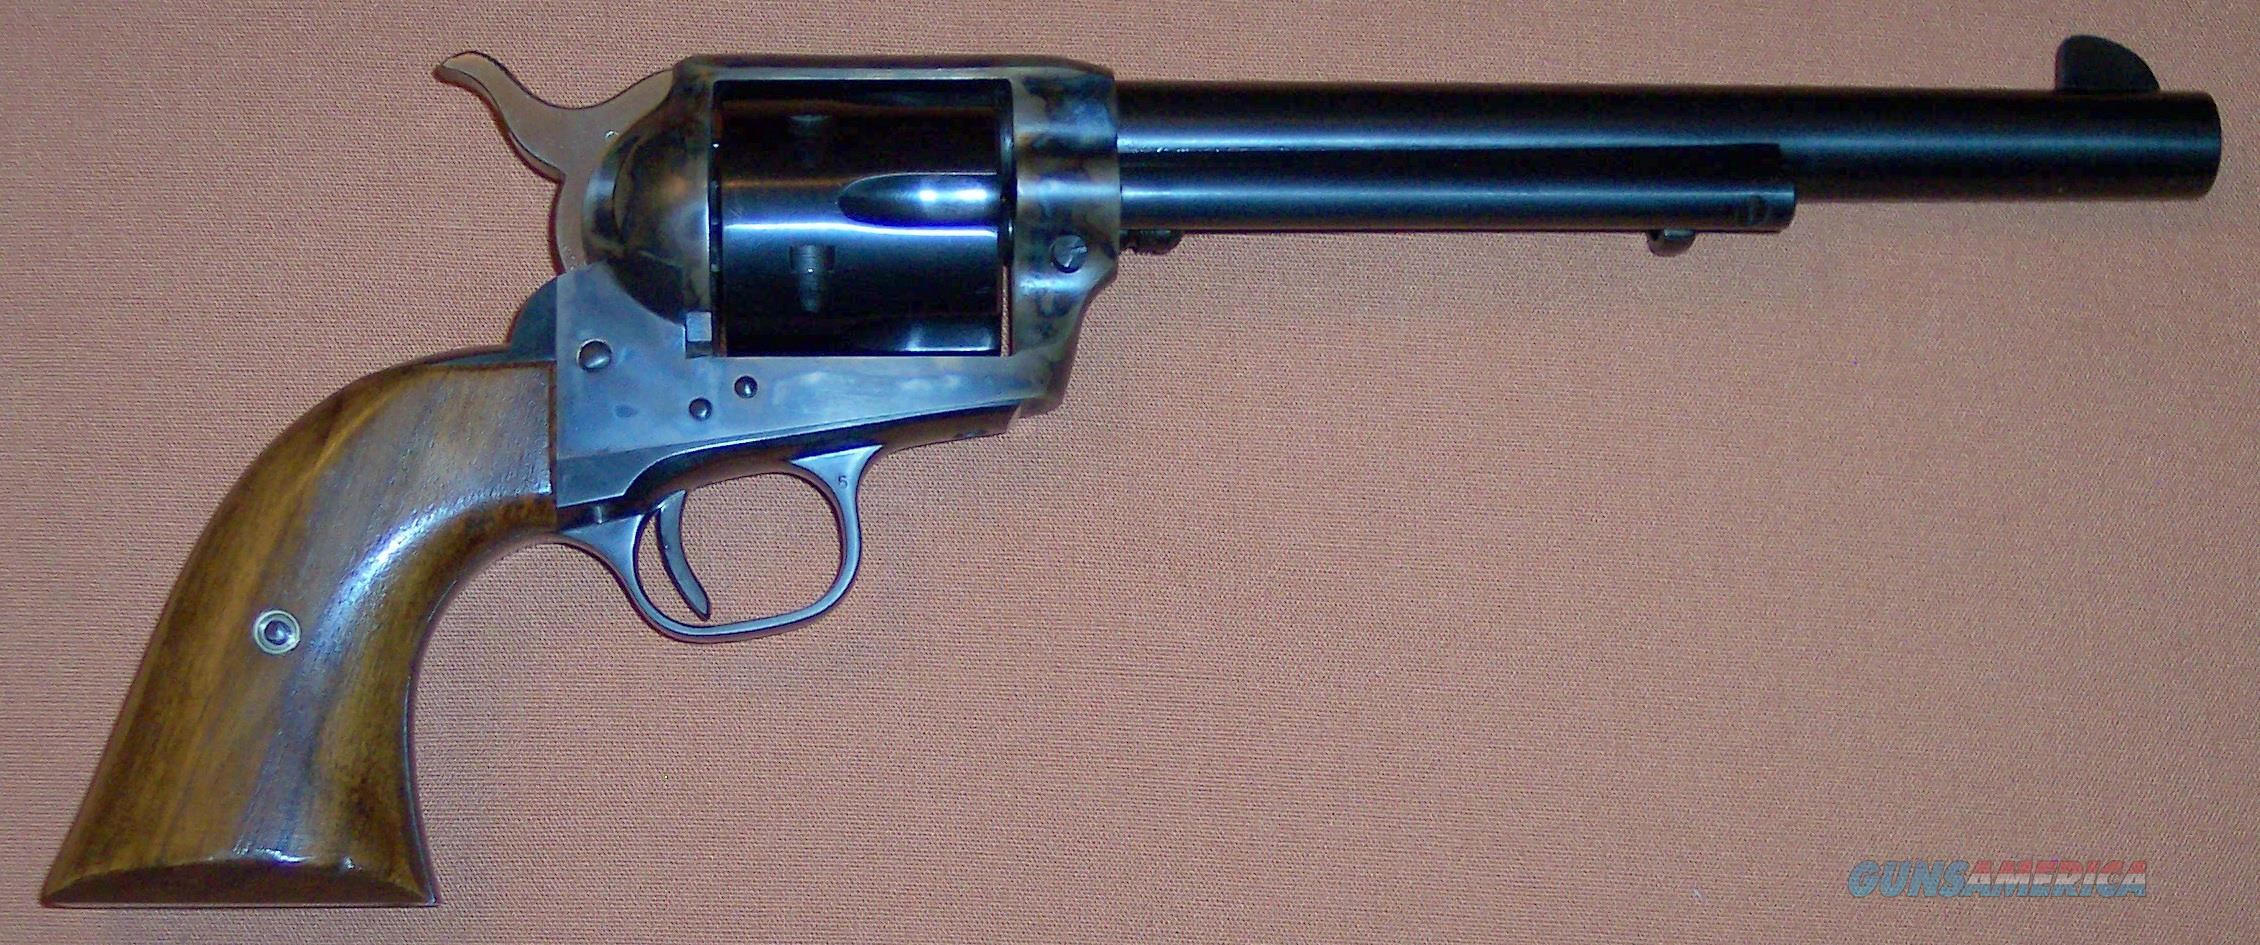 """Colt 2nd Generation Single Action Army SAA 45 N.I.B. with 7.5"""" Barrel, Factory Walnut Grips, Mint Condition  Guns > Pistols > Colt Single Action Revolvers - 2nd Gen."""